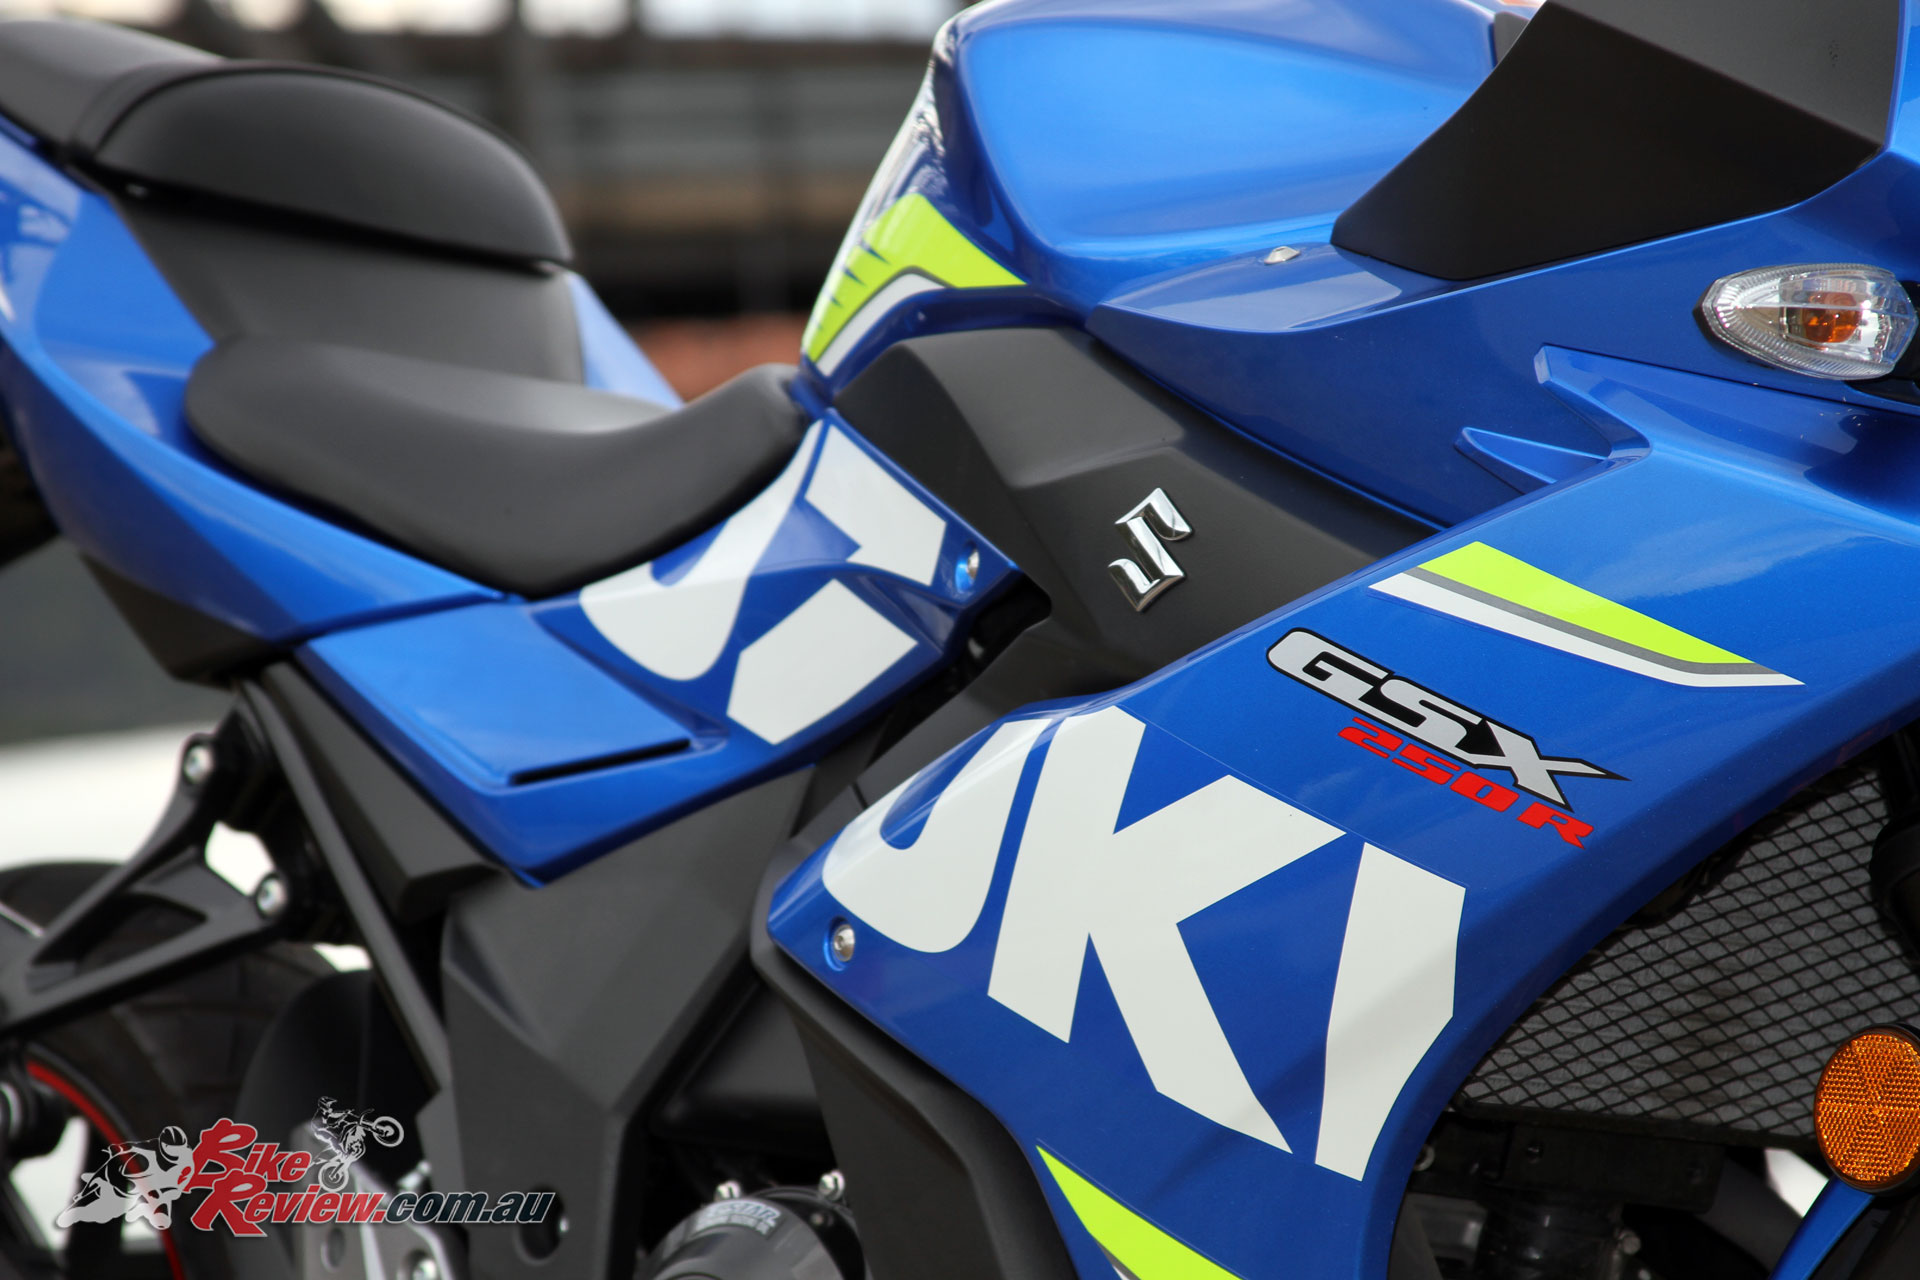 Suzuki's GSX250R packs a lot of quality of life improvements, ensuring performance is accessible, smooth and found throughout the rev range